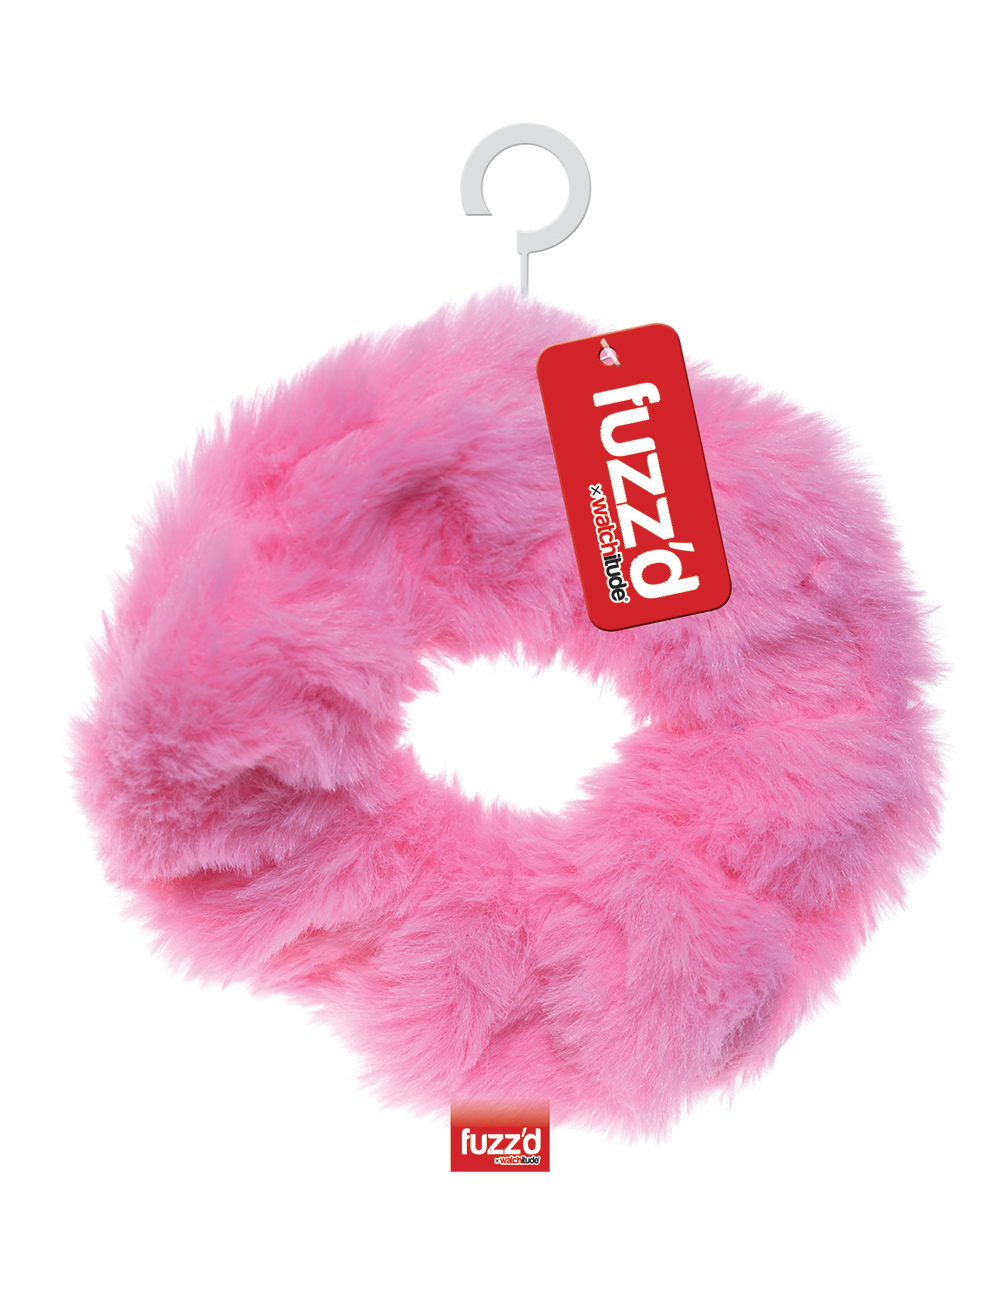 Pink Lip Gloss - Hair Tie - Fuzz'd x Watchitude